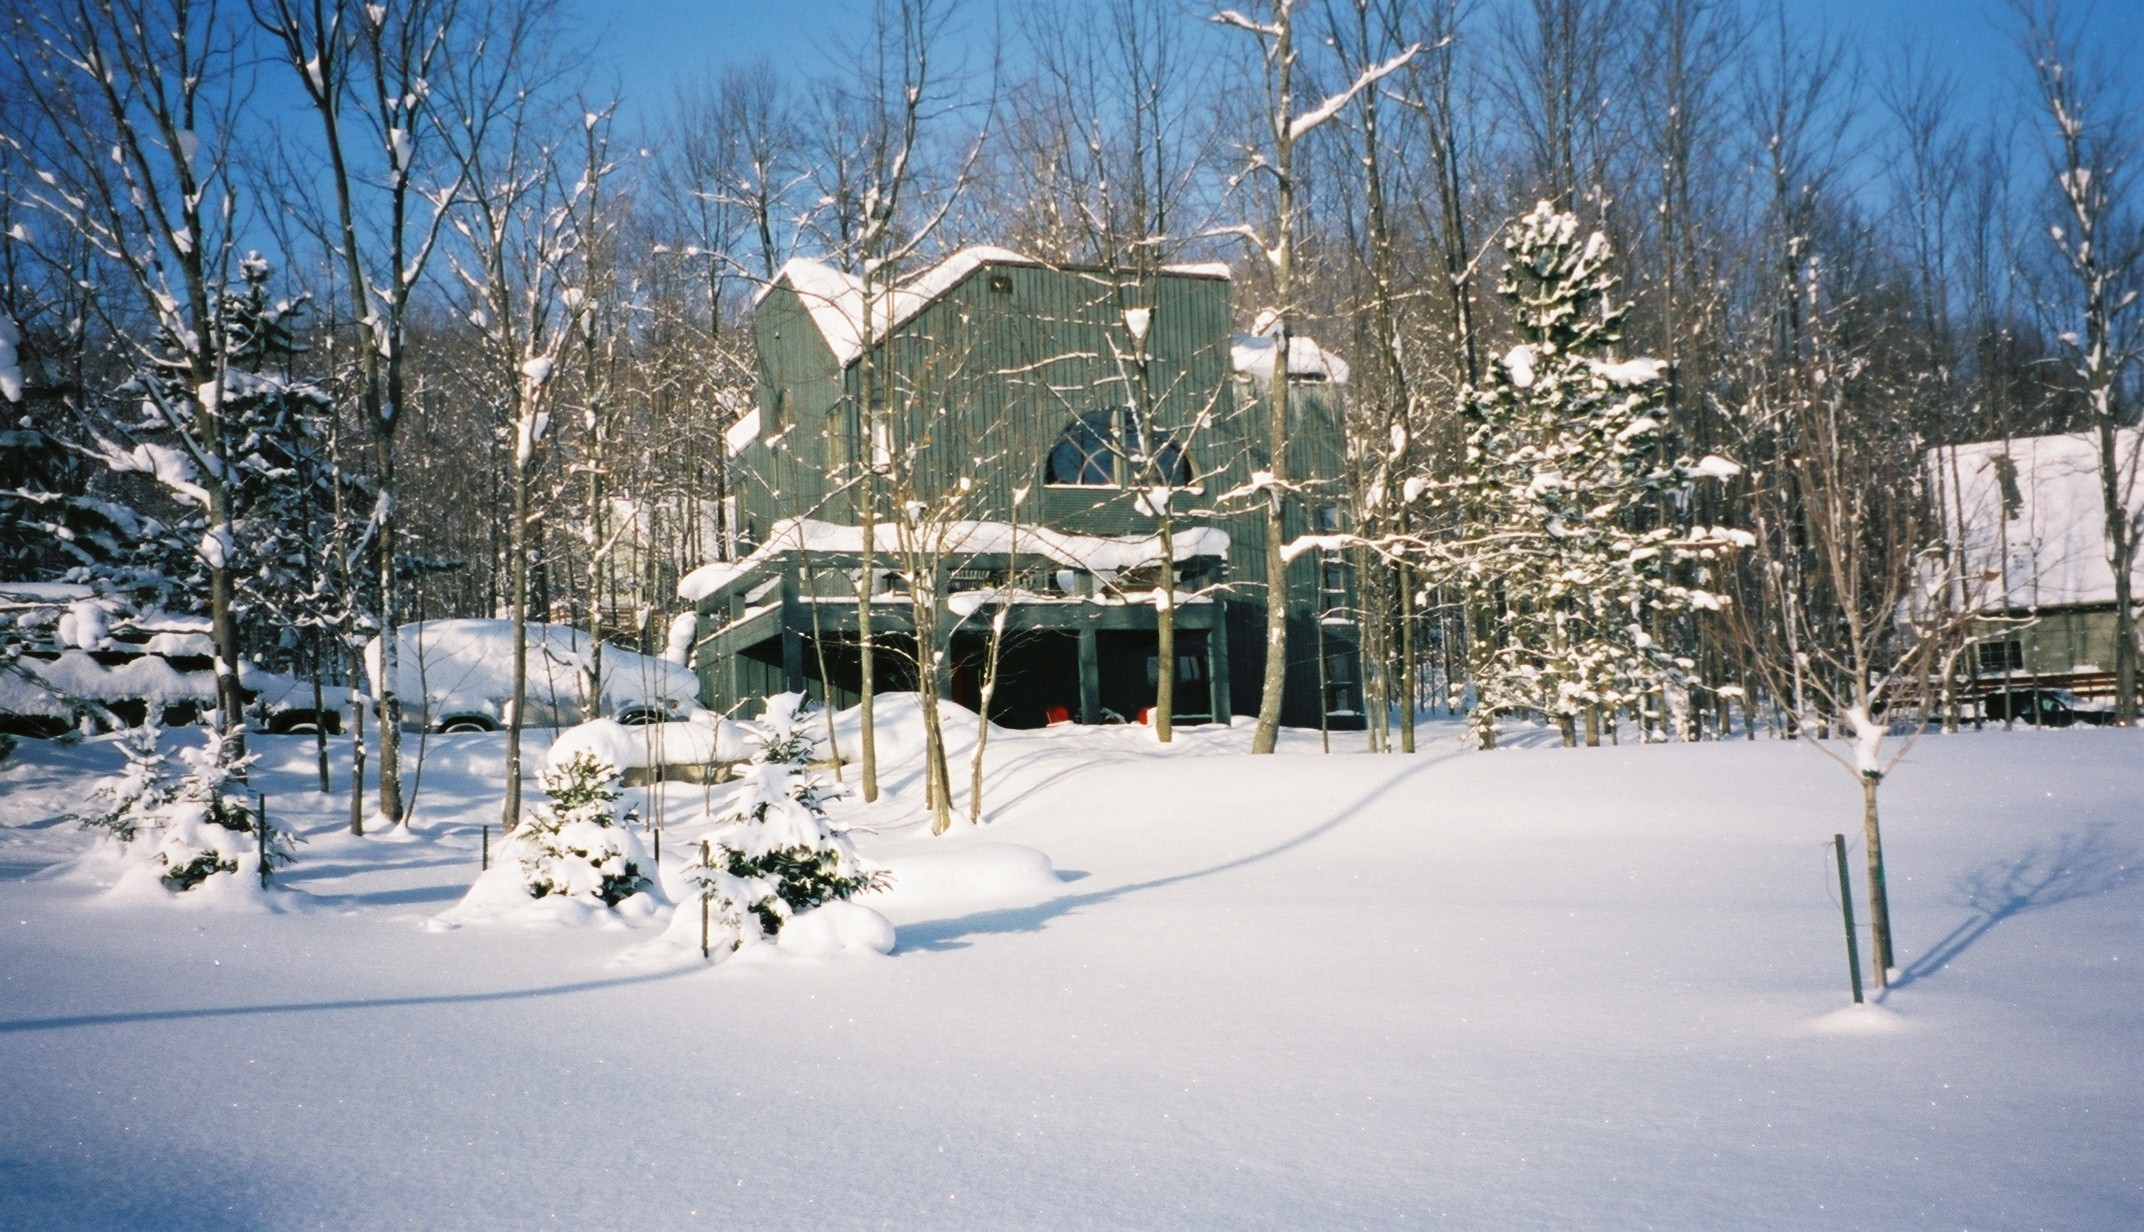 103 Angus Ave, Beaver Valley Ski Club